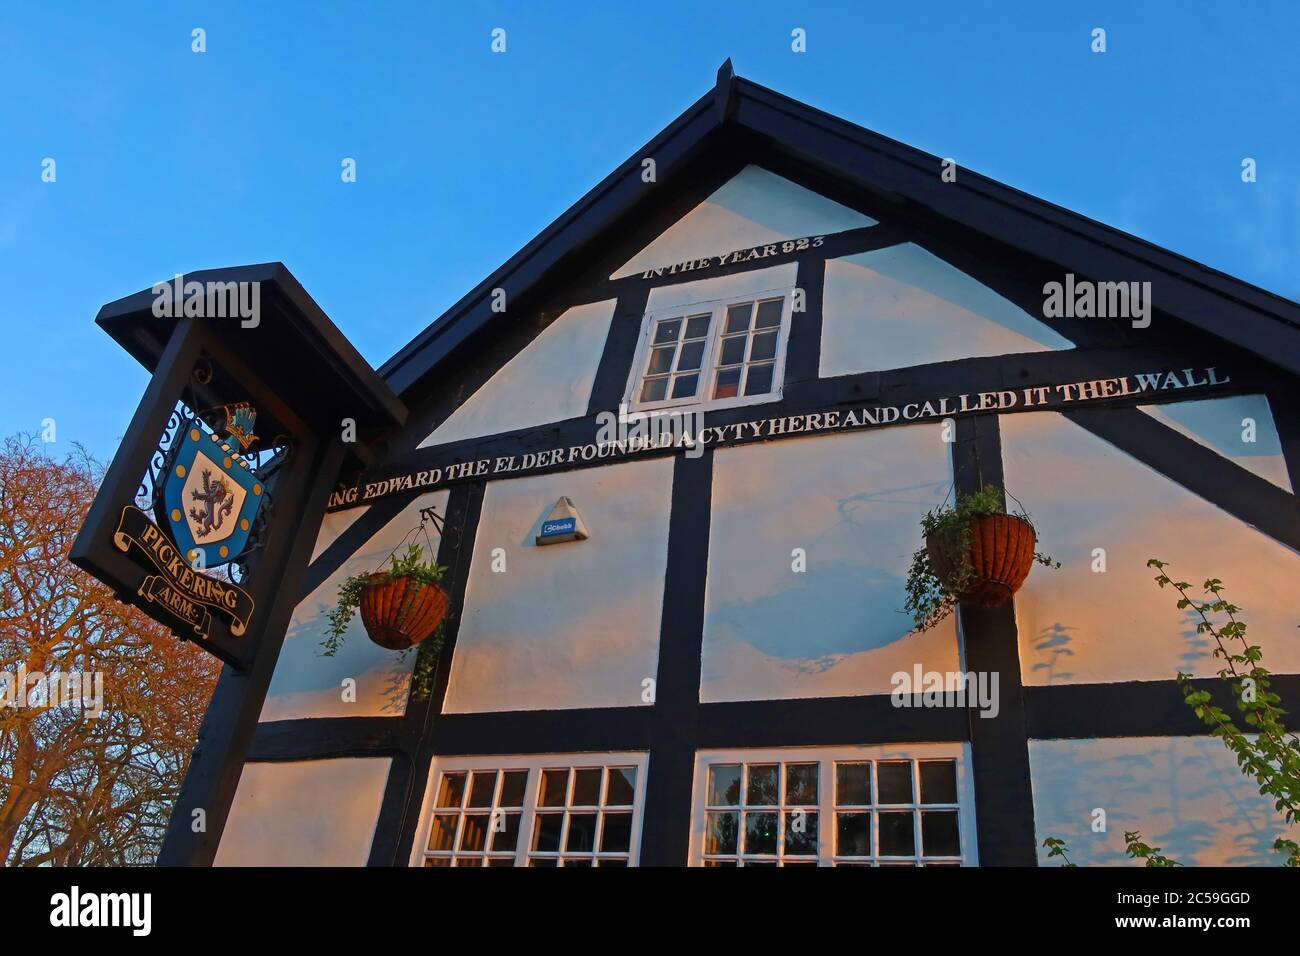 sign,inscription,The Pick,GoTonySmith,HotpixUK,@HotpixUk,evening,village,Cheshire Villages,923,Year 923,timber frame,Tudor,building,historic,Bell Lane,Cheshire,WA4,bar,side,timbered,listed building,public house,sunset,warm,16th,century,18th,inn,gable end,17th century,letters,writing,history,pub sign,shield,crest of arms